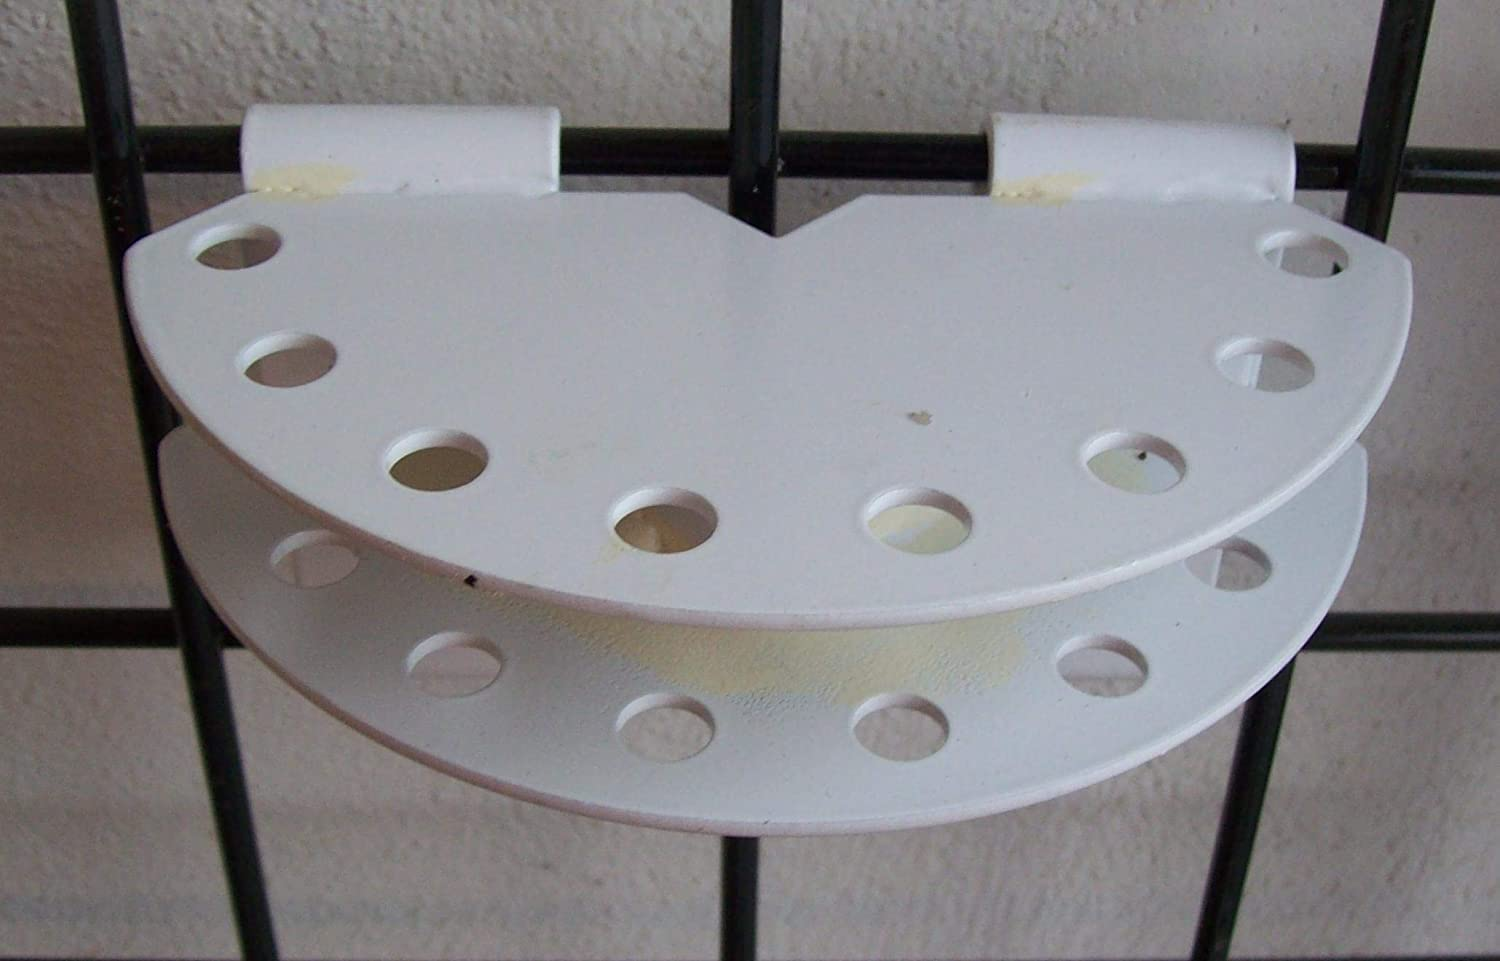 Gridwire Swing It Display White Finish